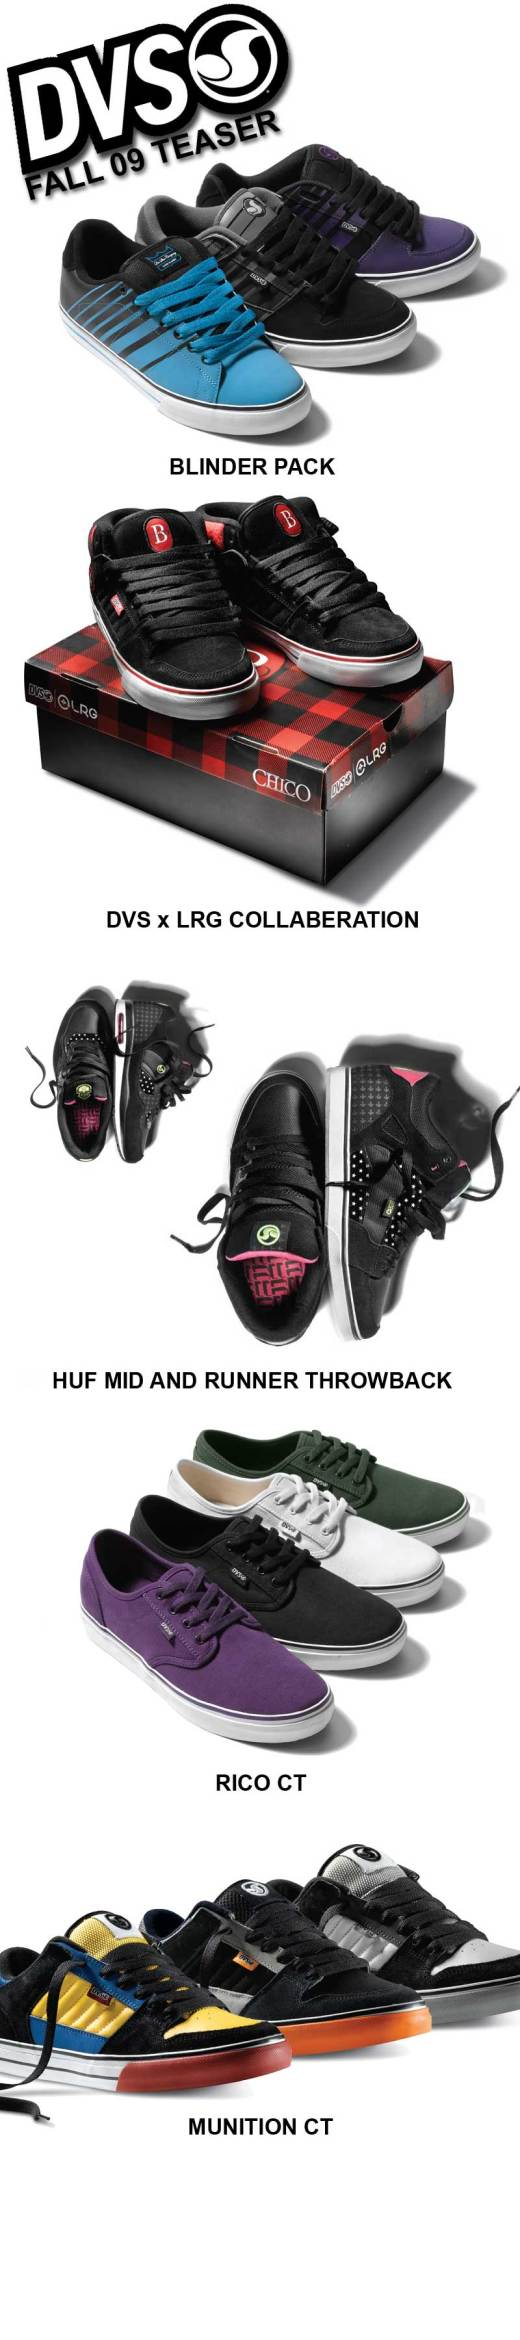 DVS fall 09 preview